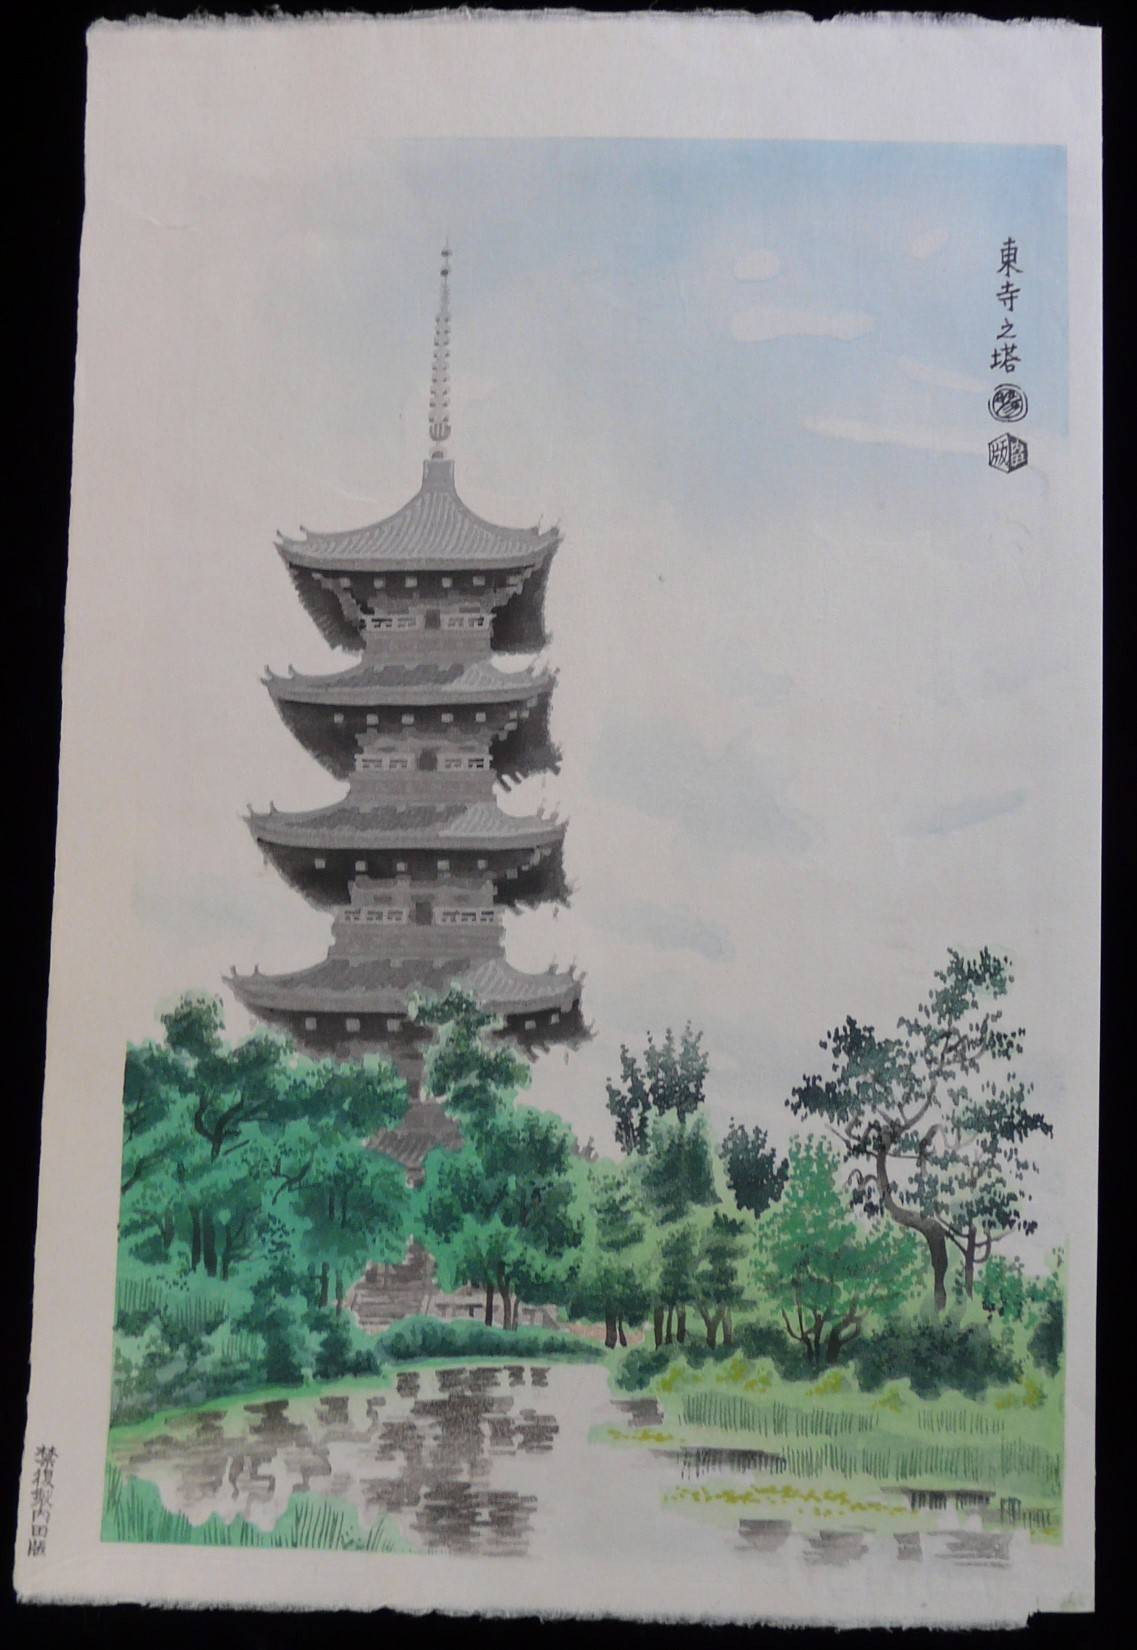 EIICHI KOTOZUKA: #P2324 PAGODA OF TOJI TEMPLE IN KYOTO